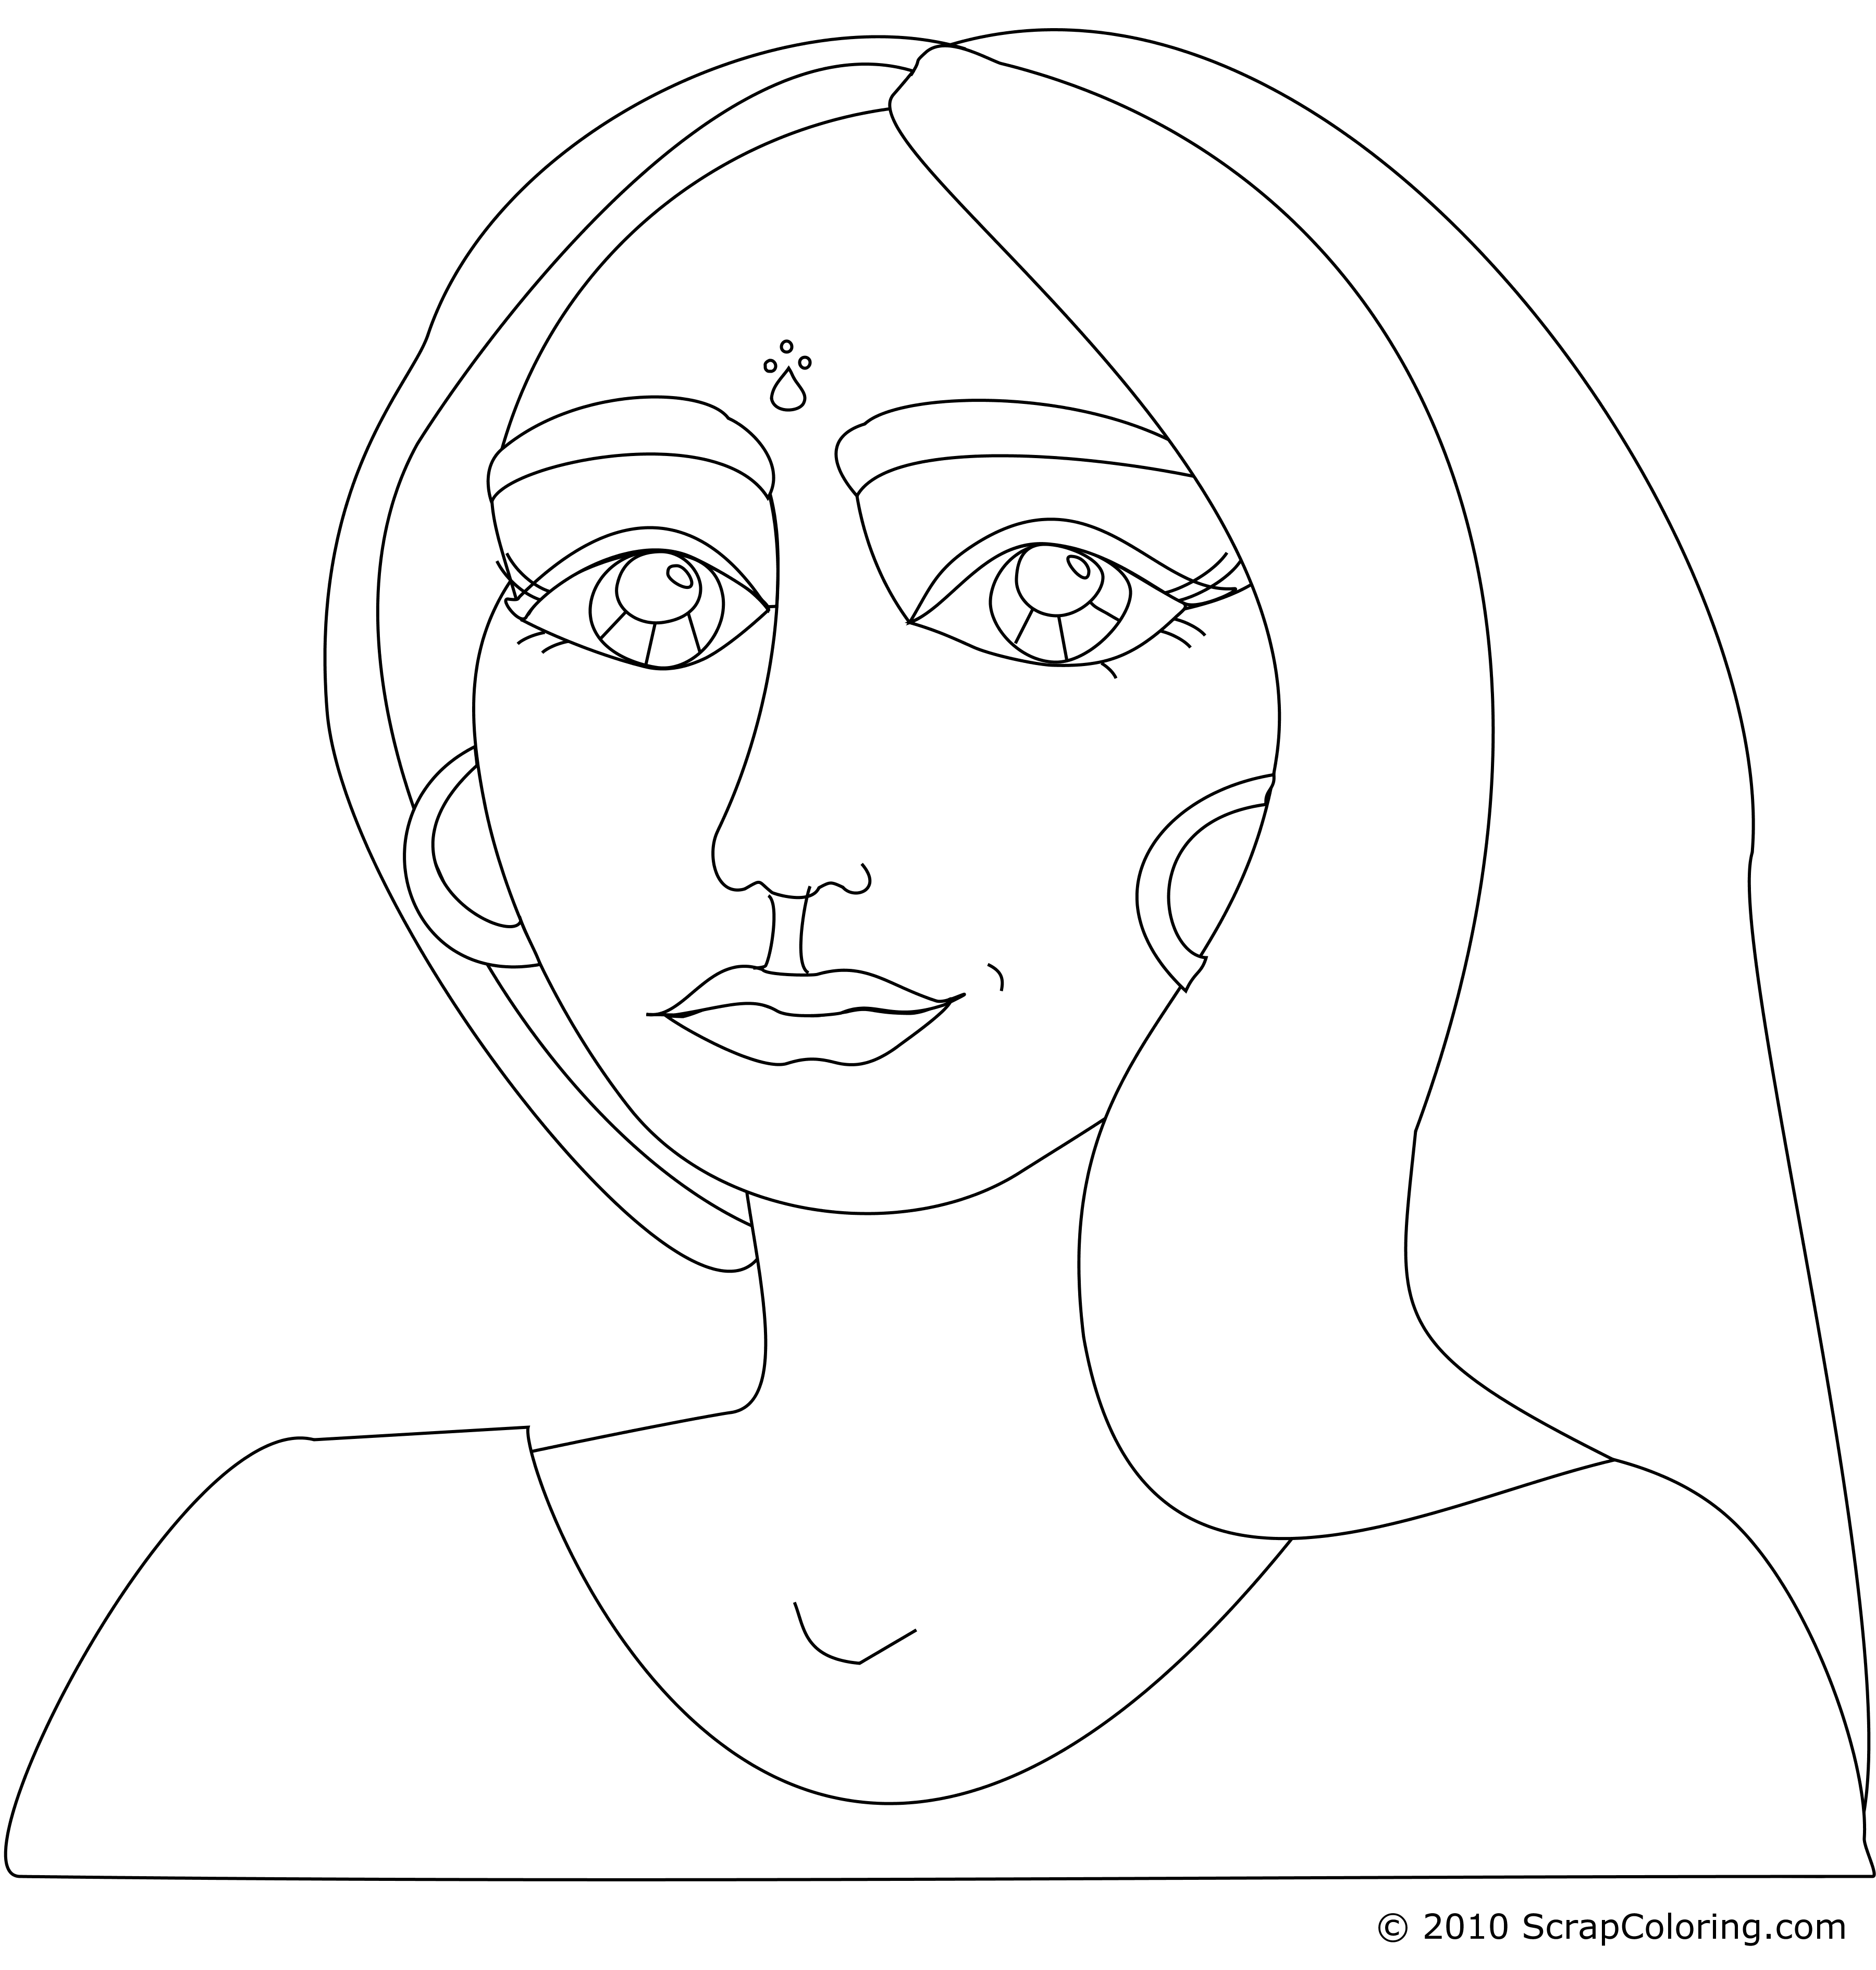 Female Faces Drawing at GetDrawings.com   Free for personal use ...